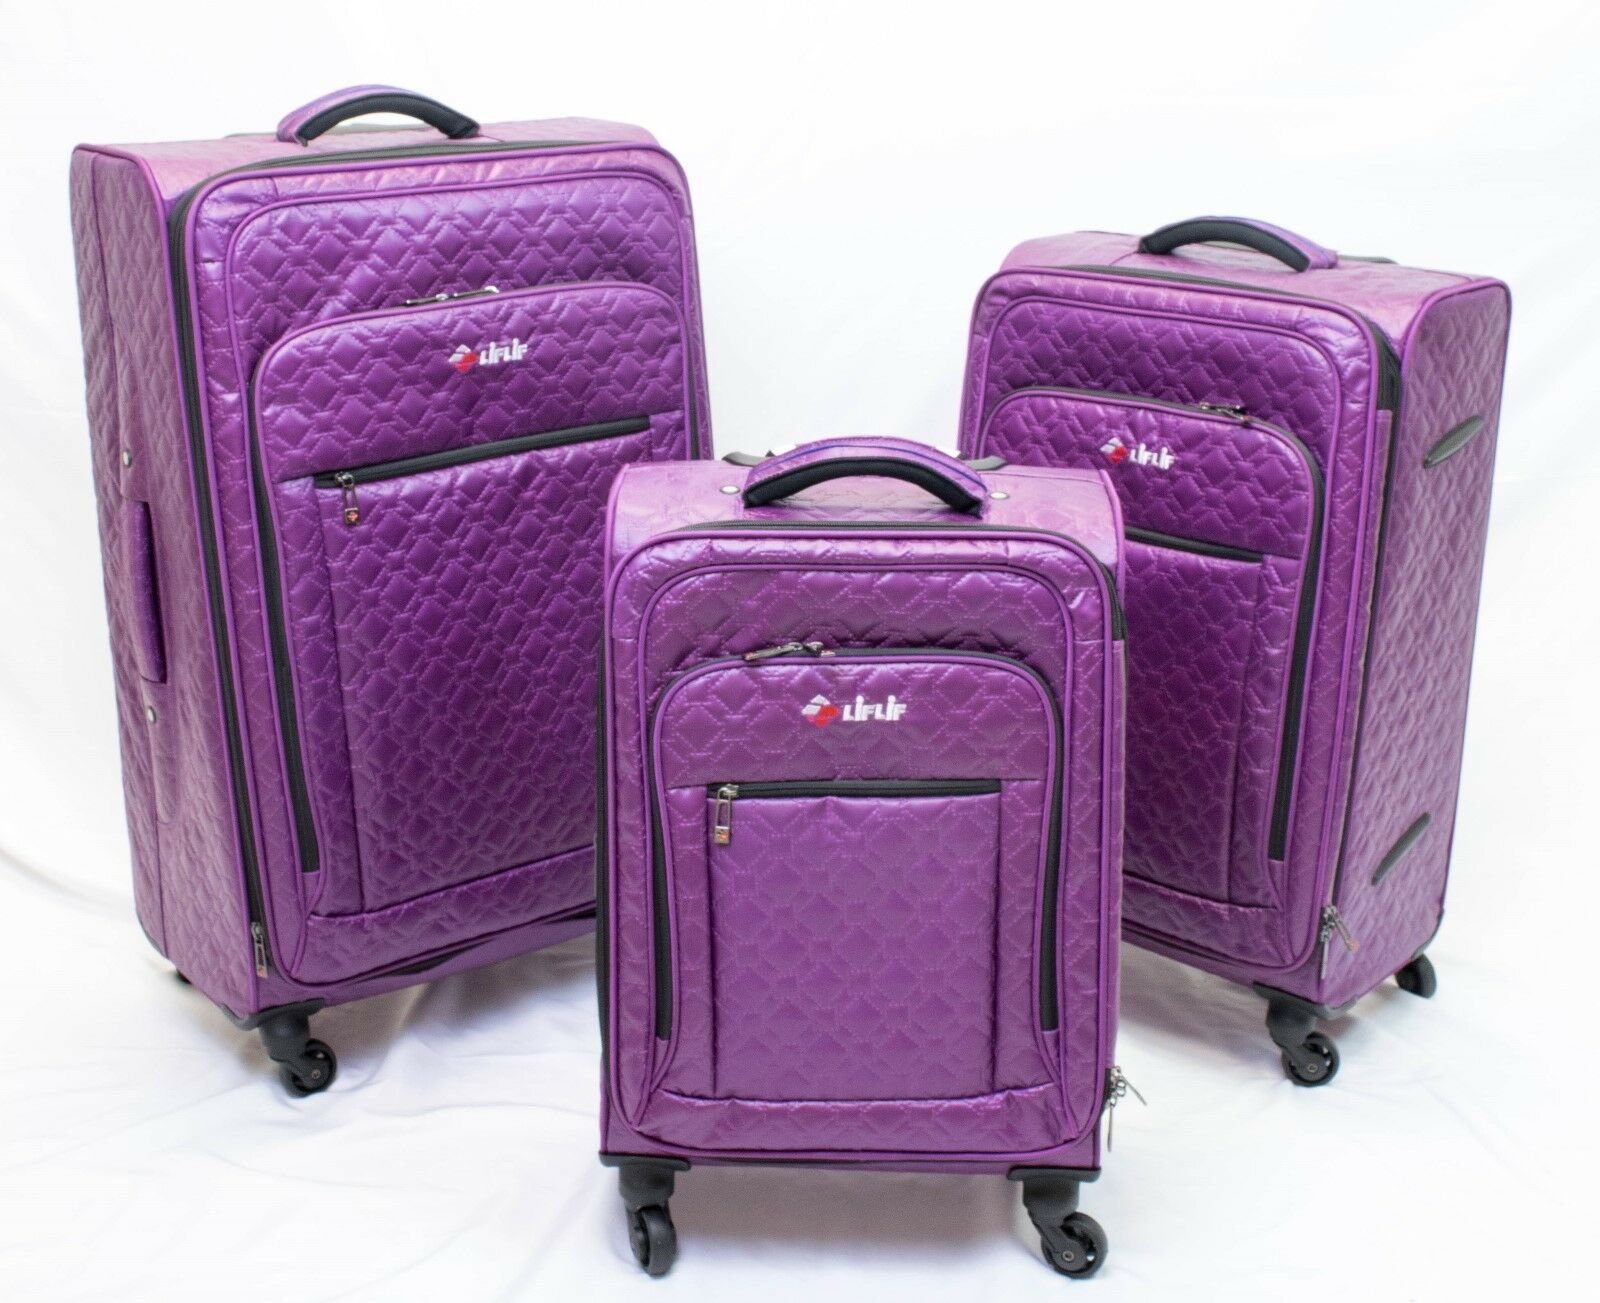 LiFLiF 3 piece spinner luggage set-